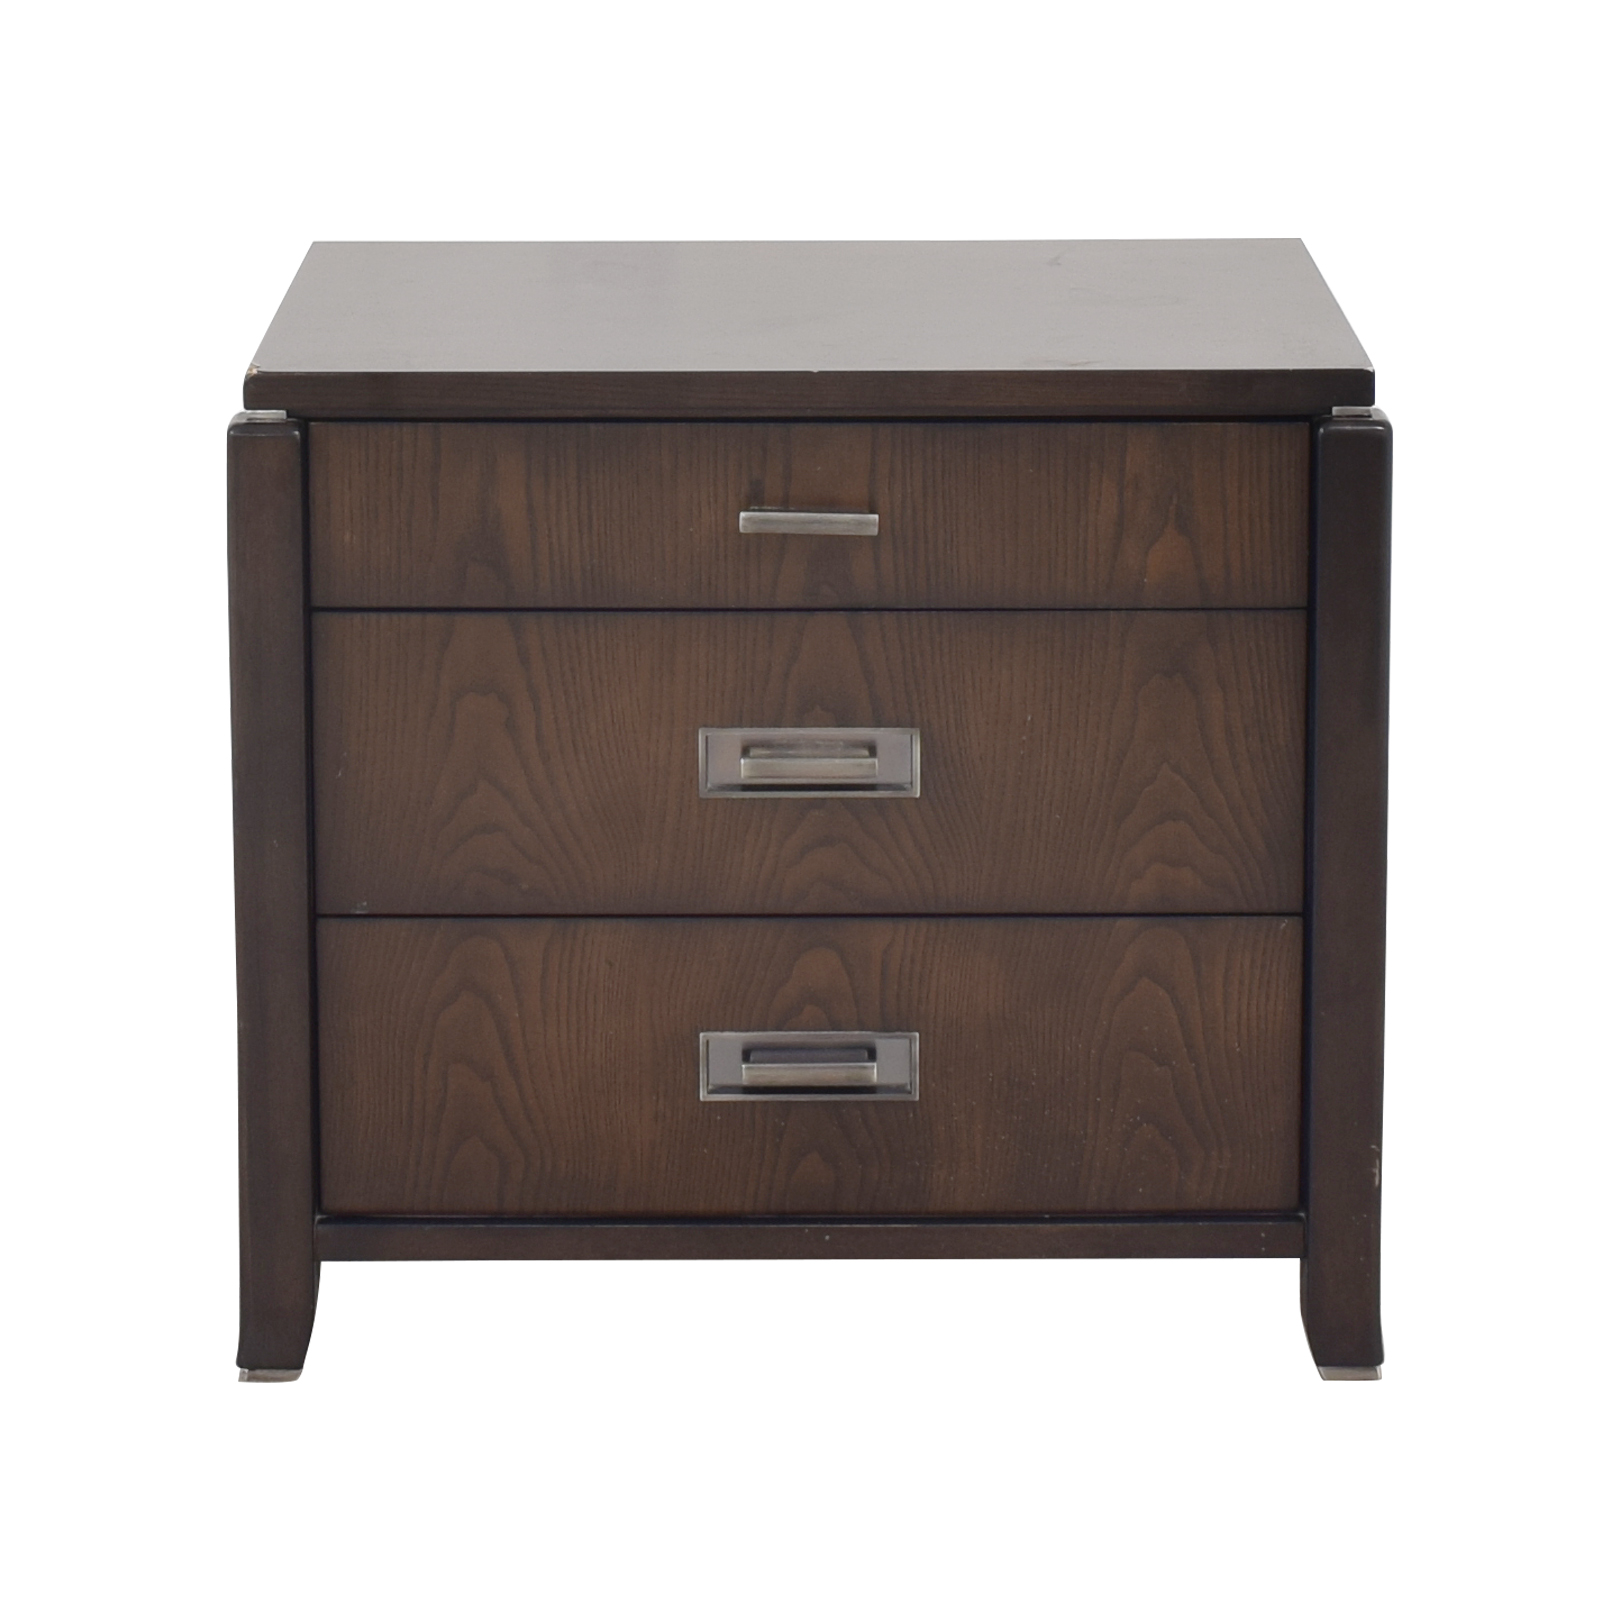 Casana Furniture Casana Grandeur Night Stand